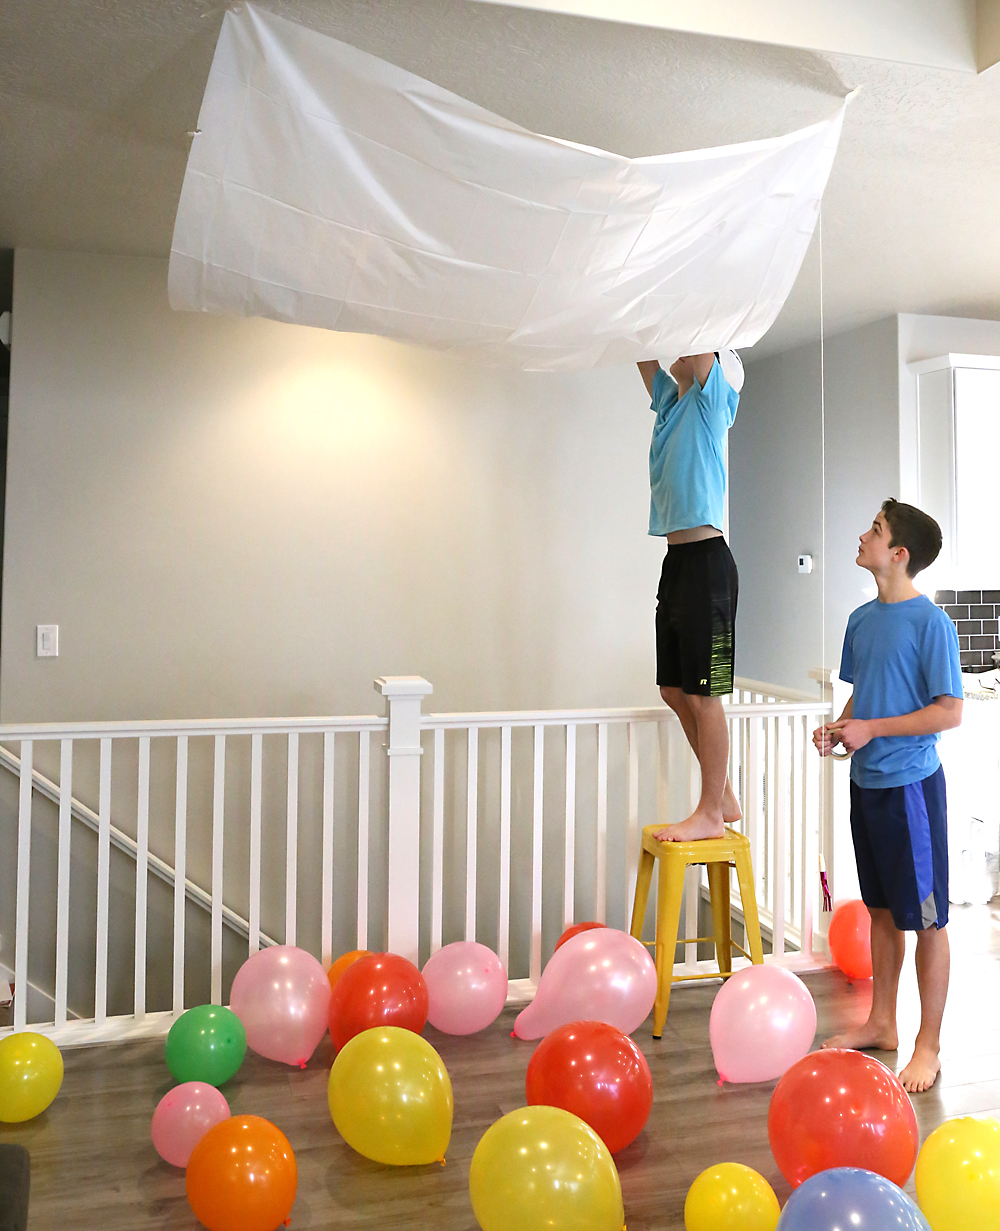 Diy New Years Balloon Drop: New Year's Eve Countdown At Home With The Kids